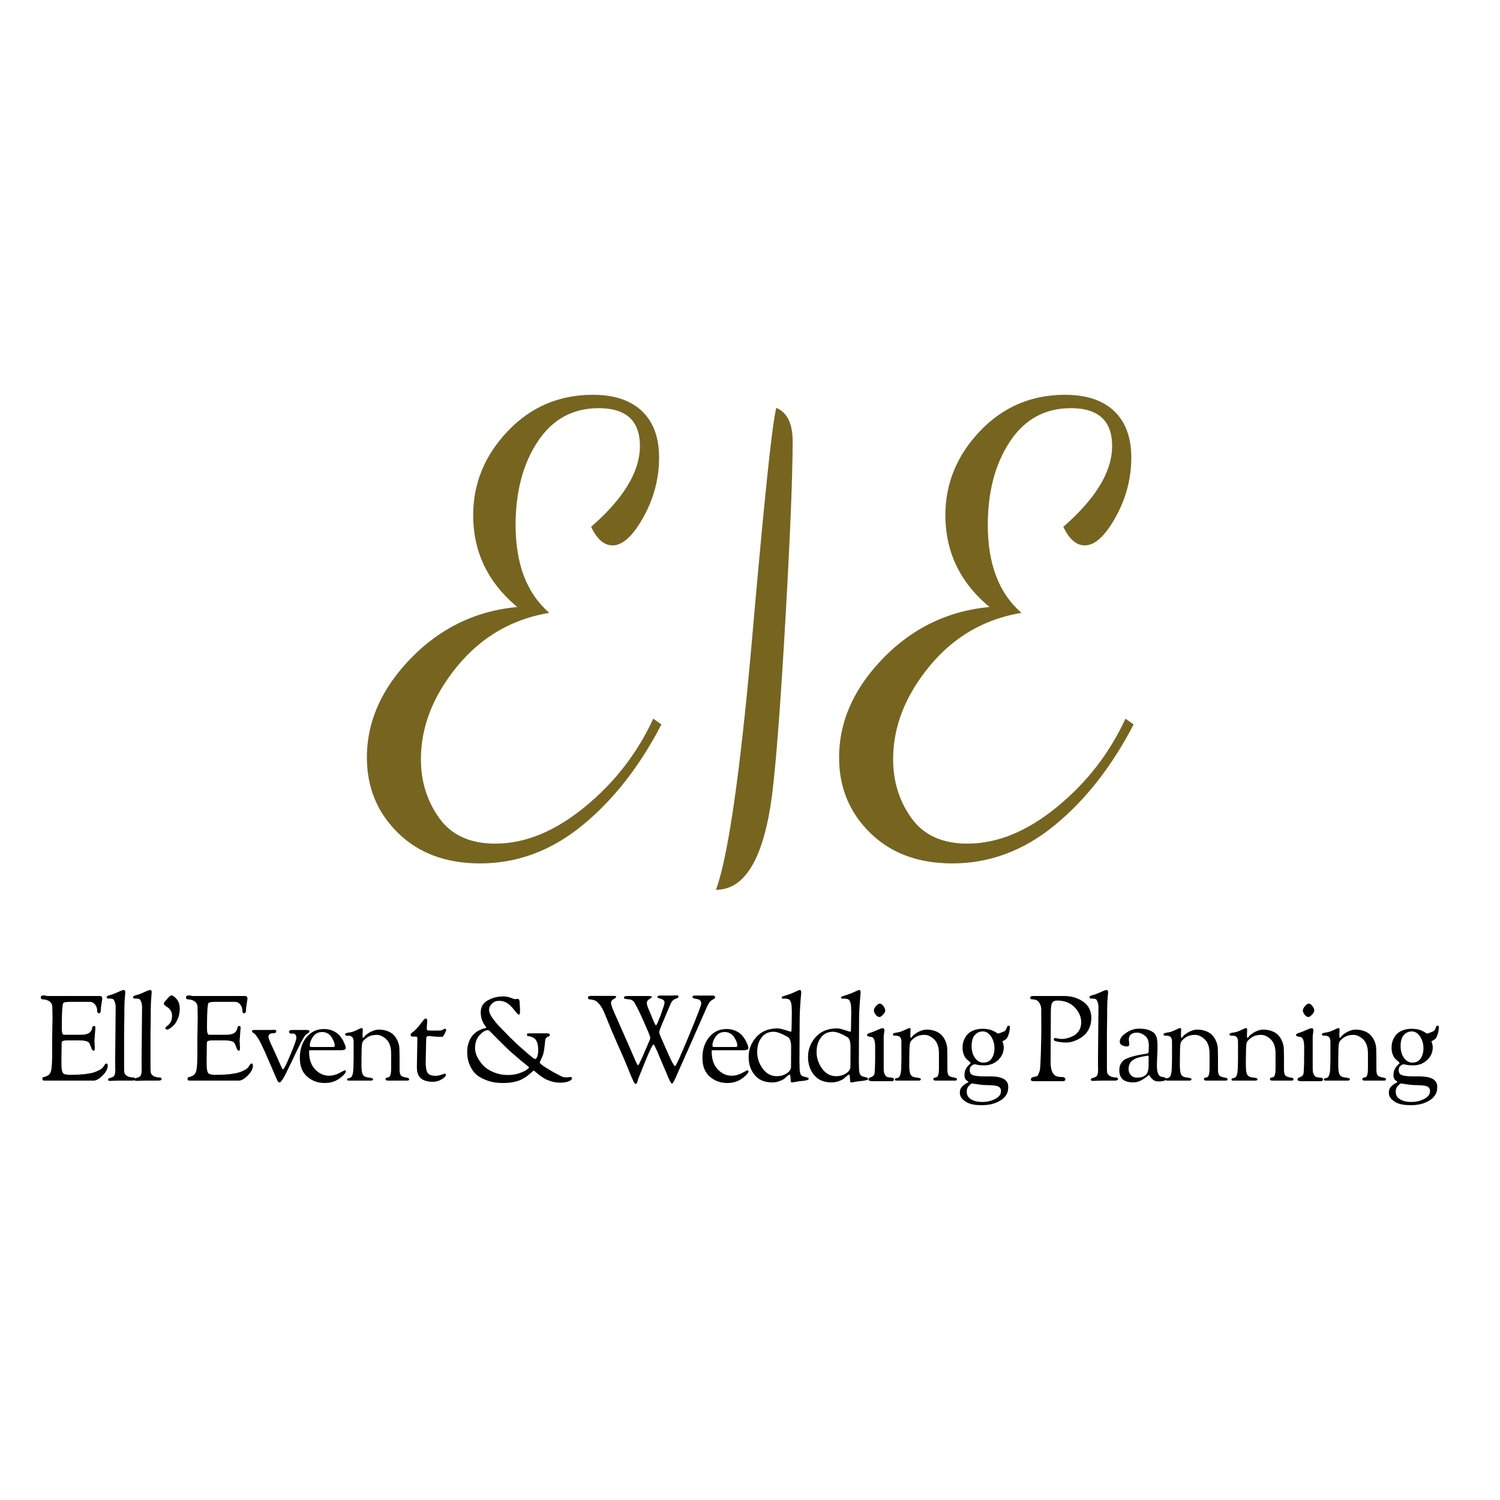 Ell'Event & Wedding Planning